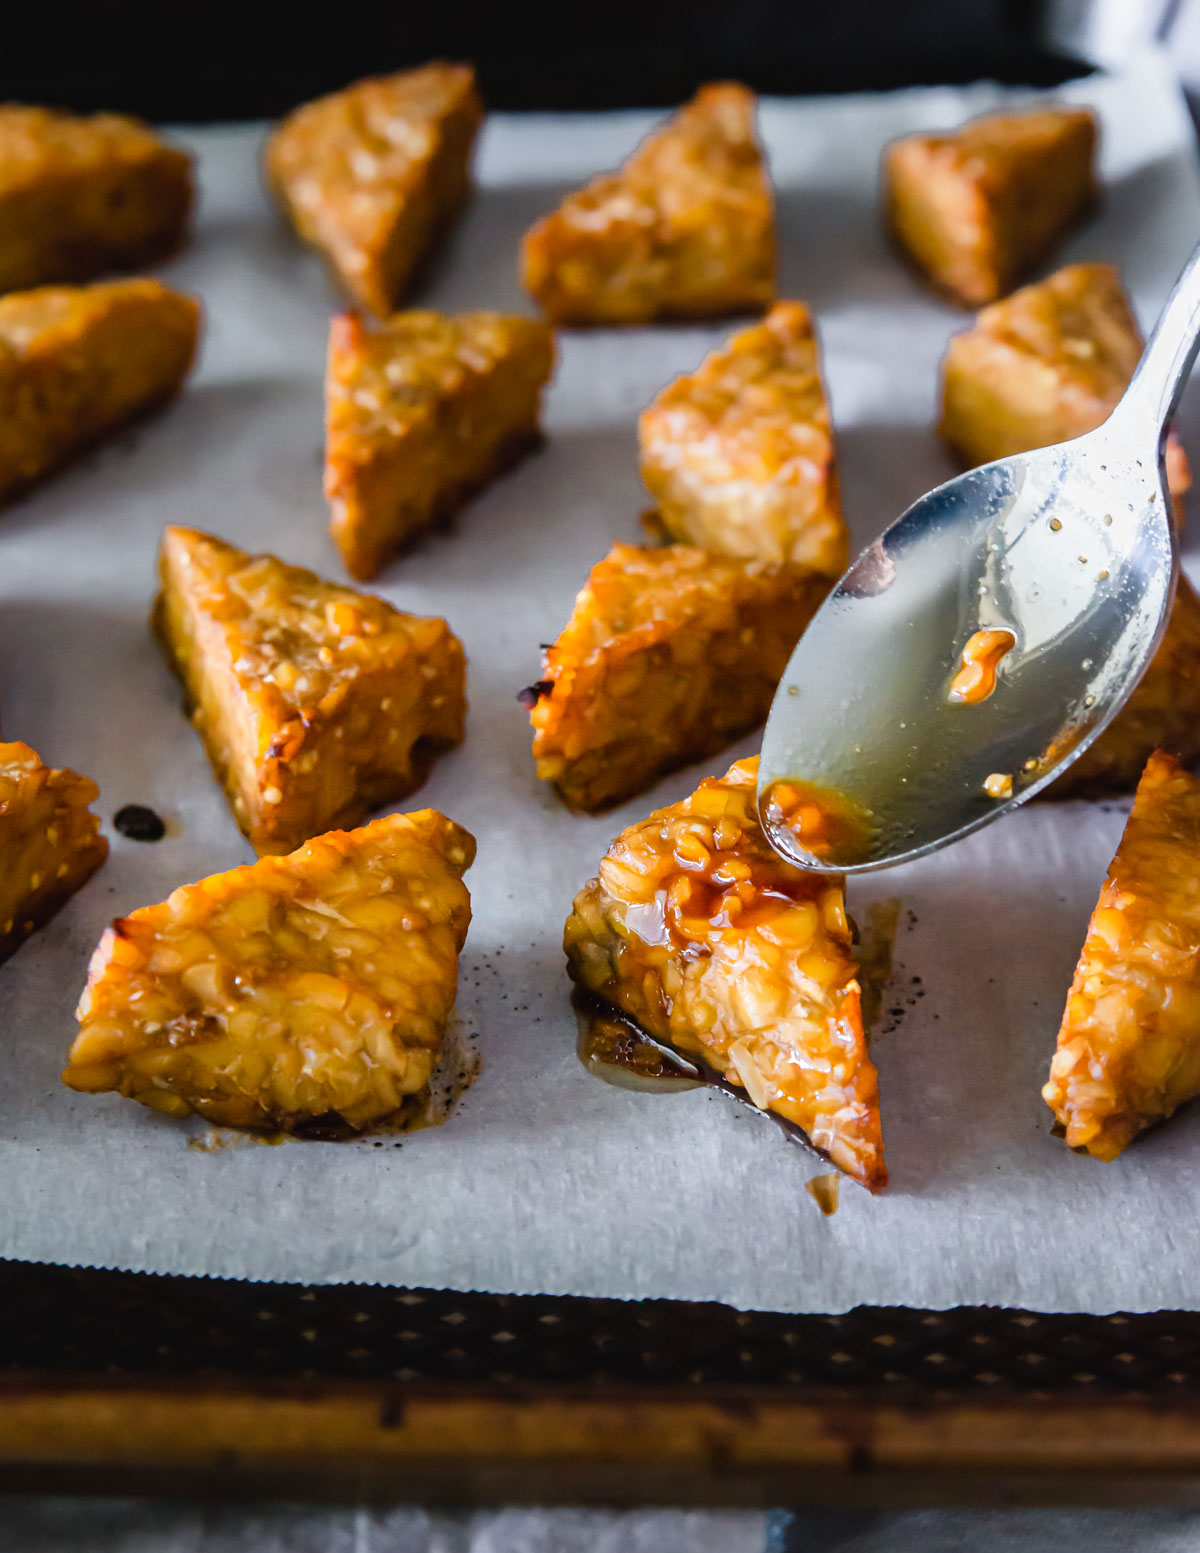 Simple oven baked crispy marinated tempeh.